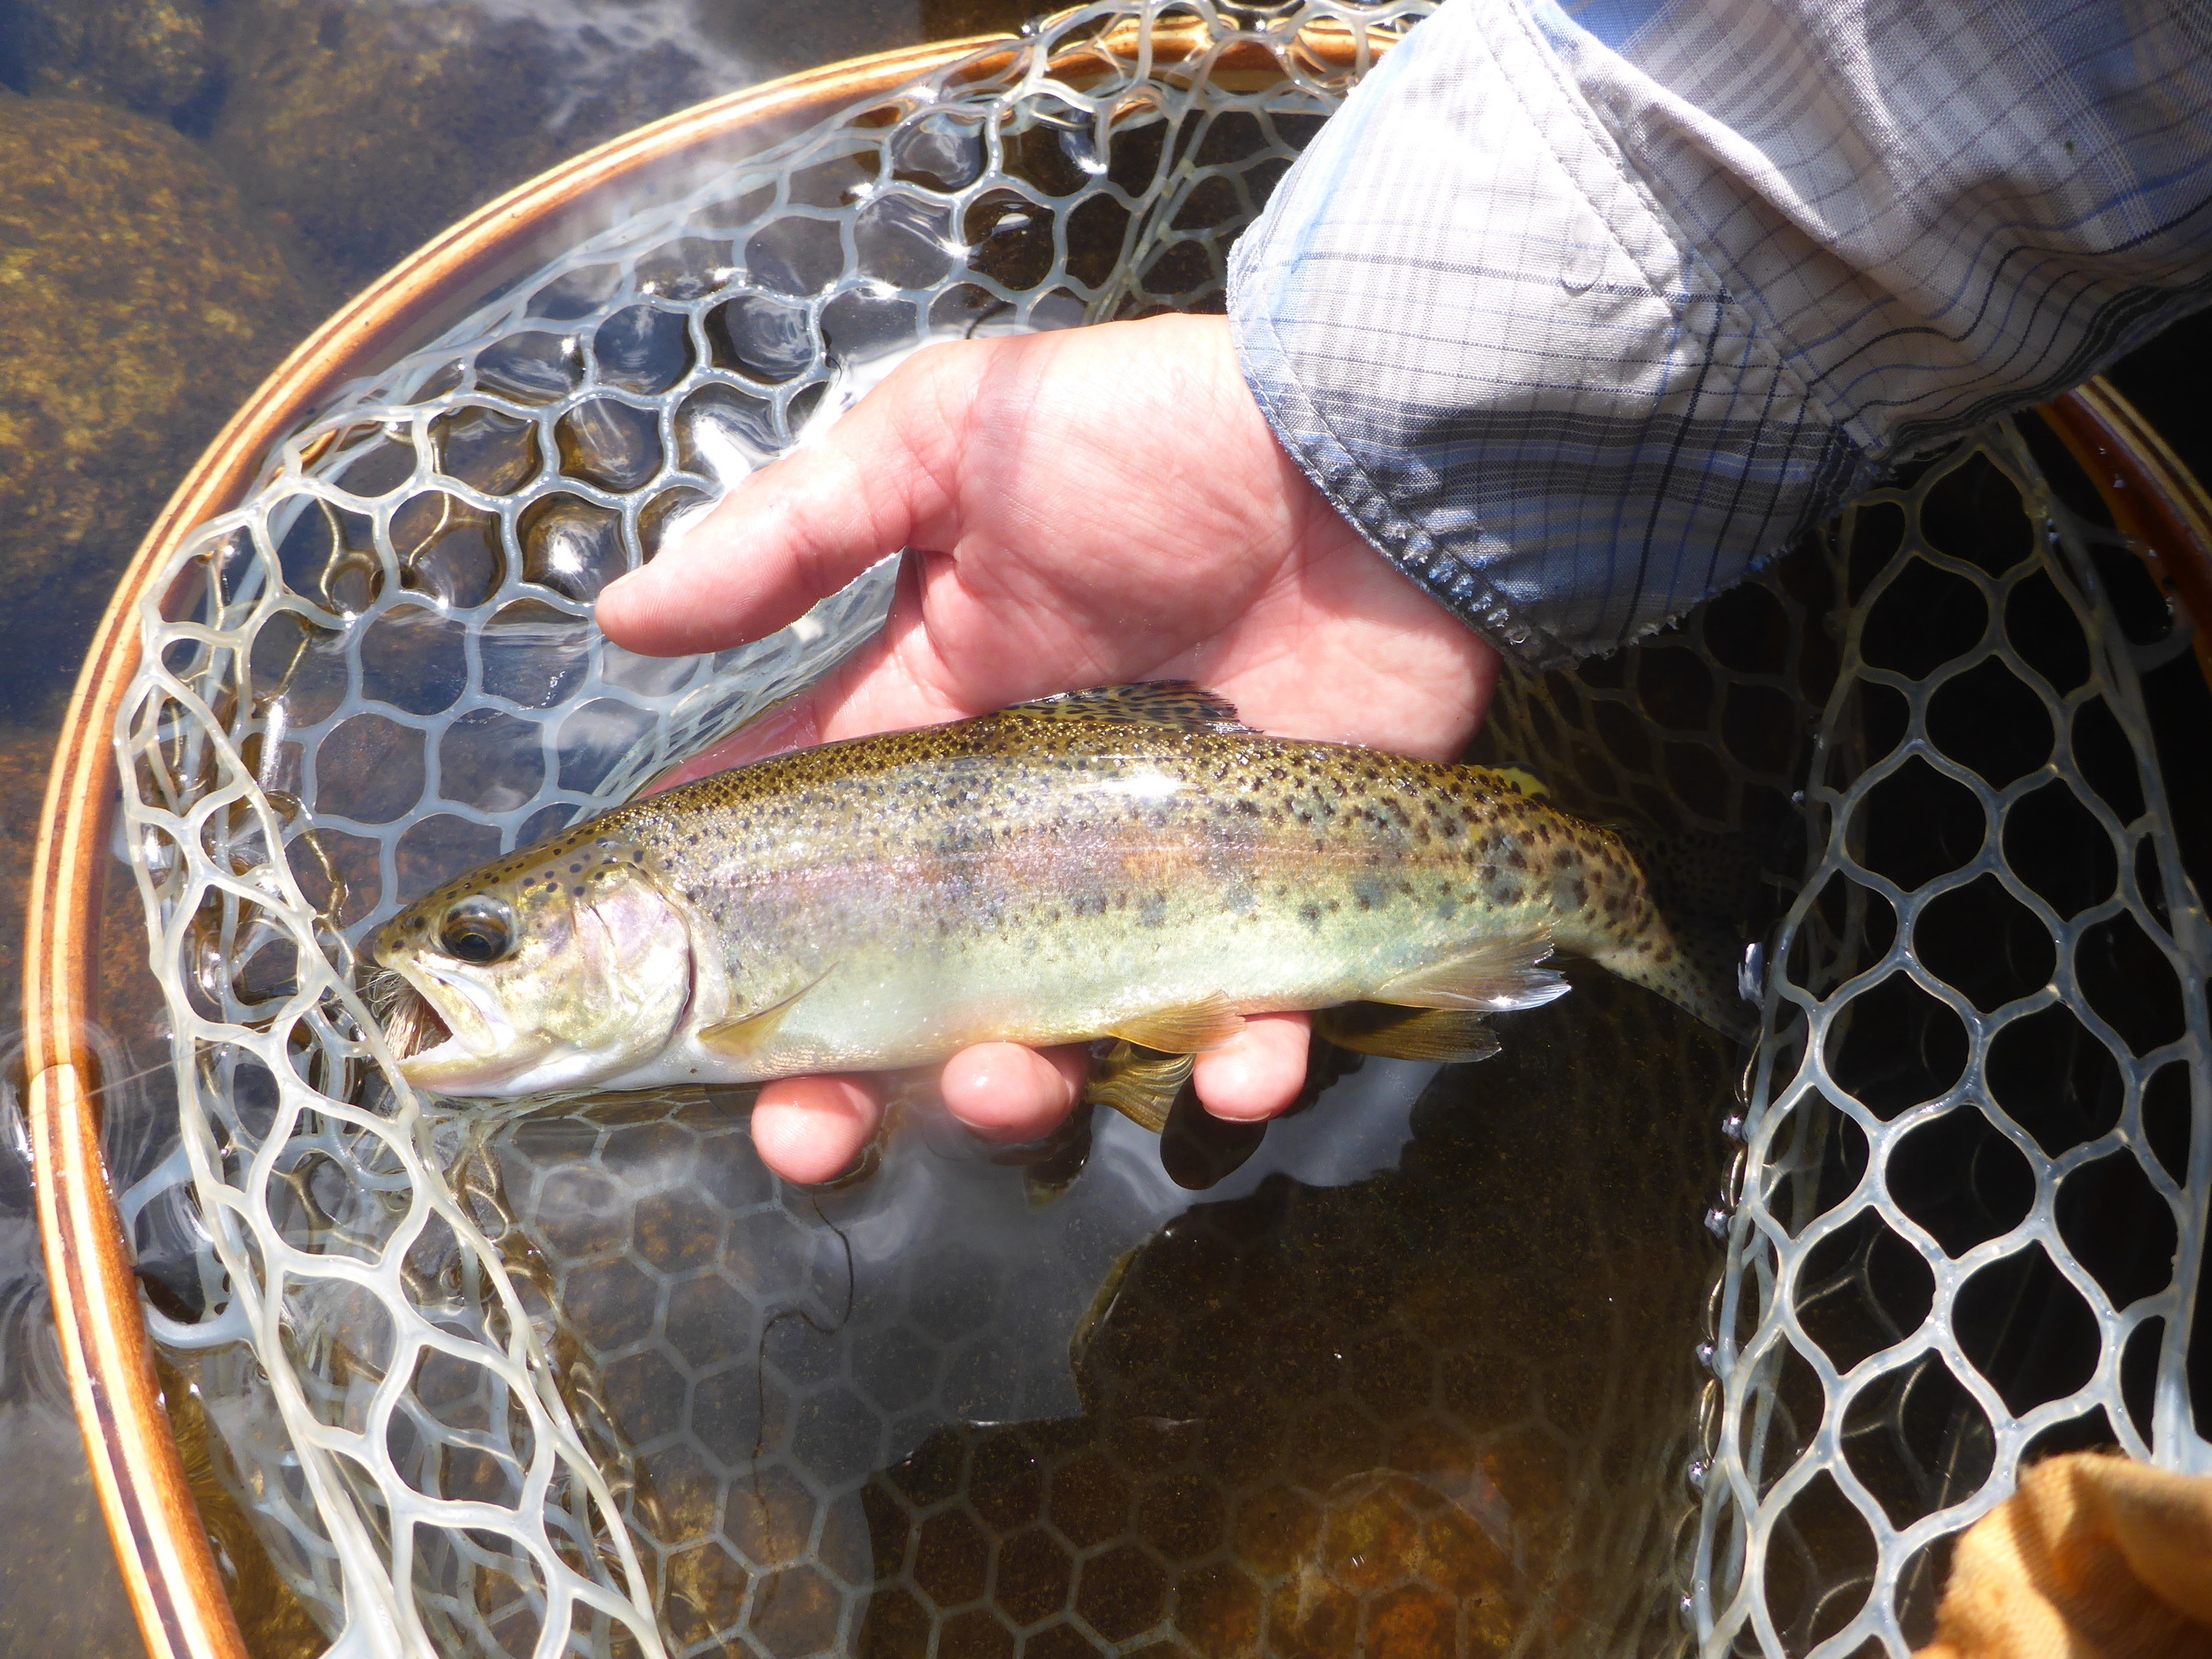 Wild rainbows like this have been common in the small streams this season.